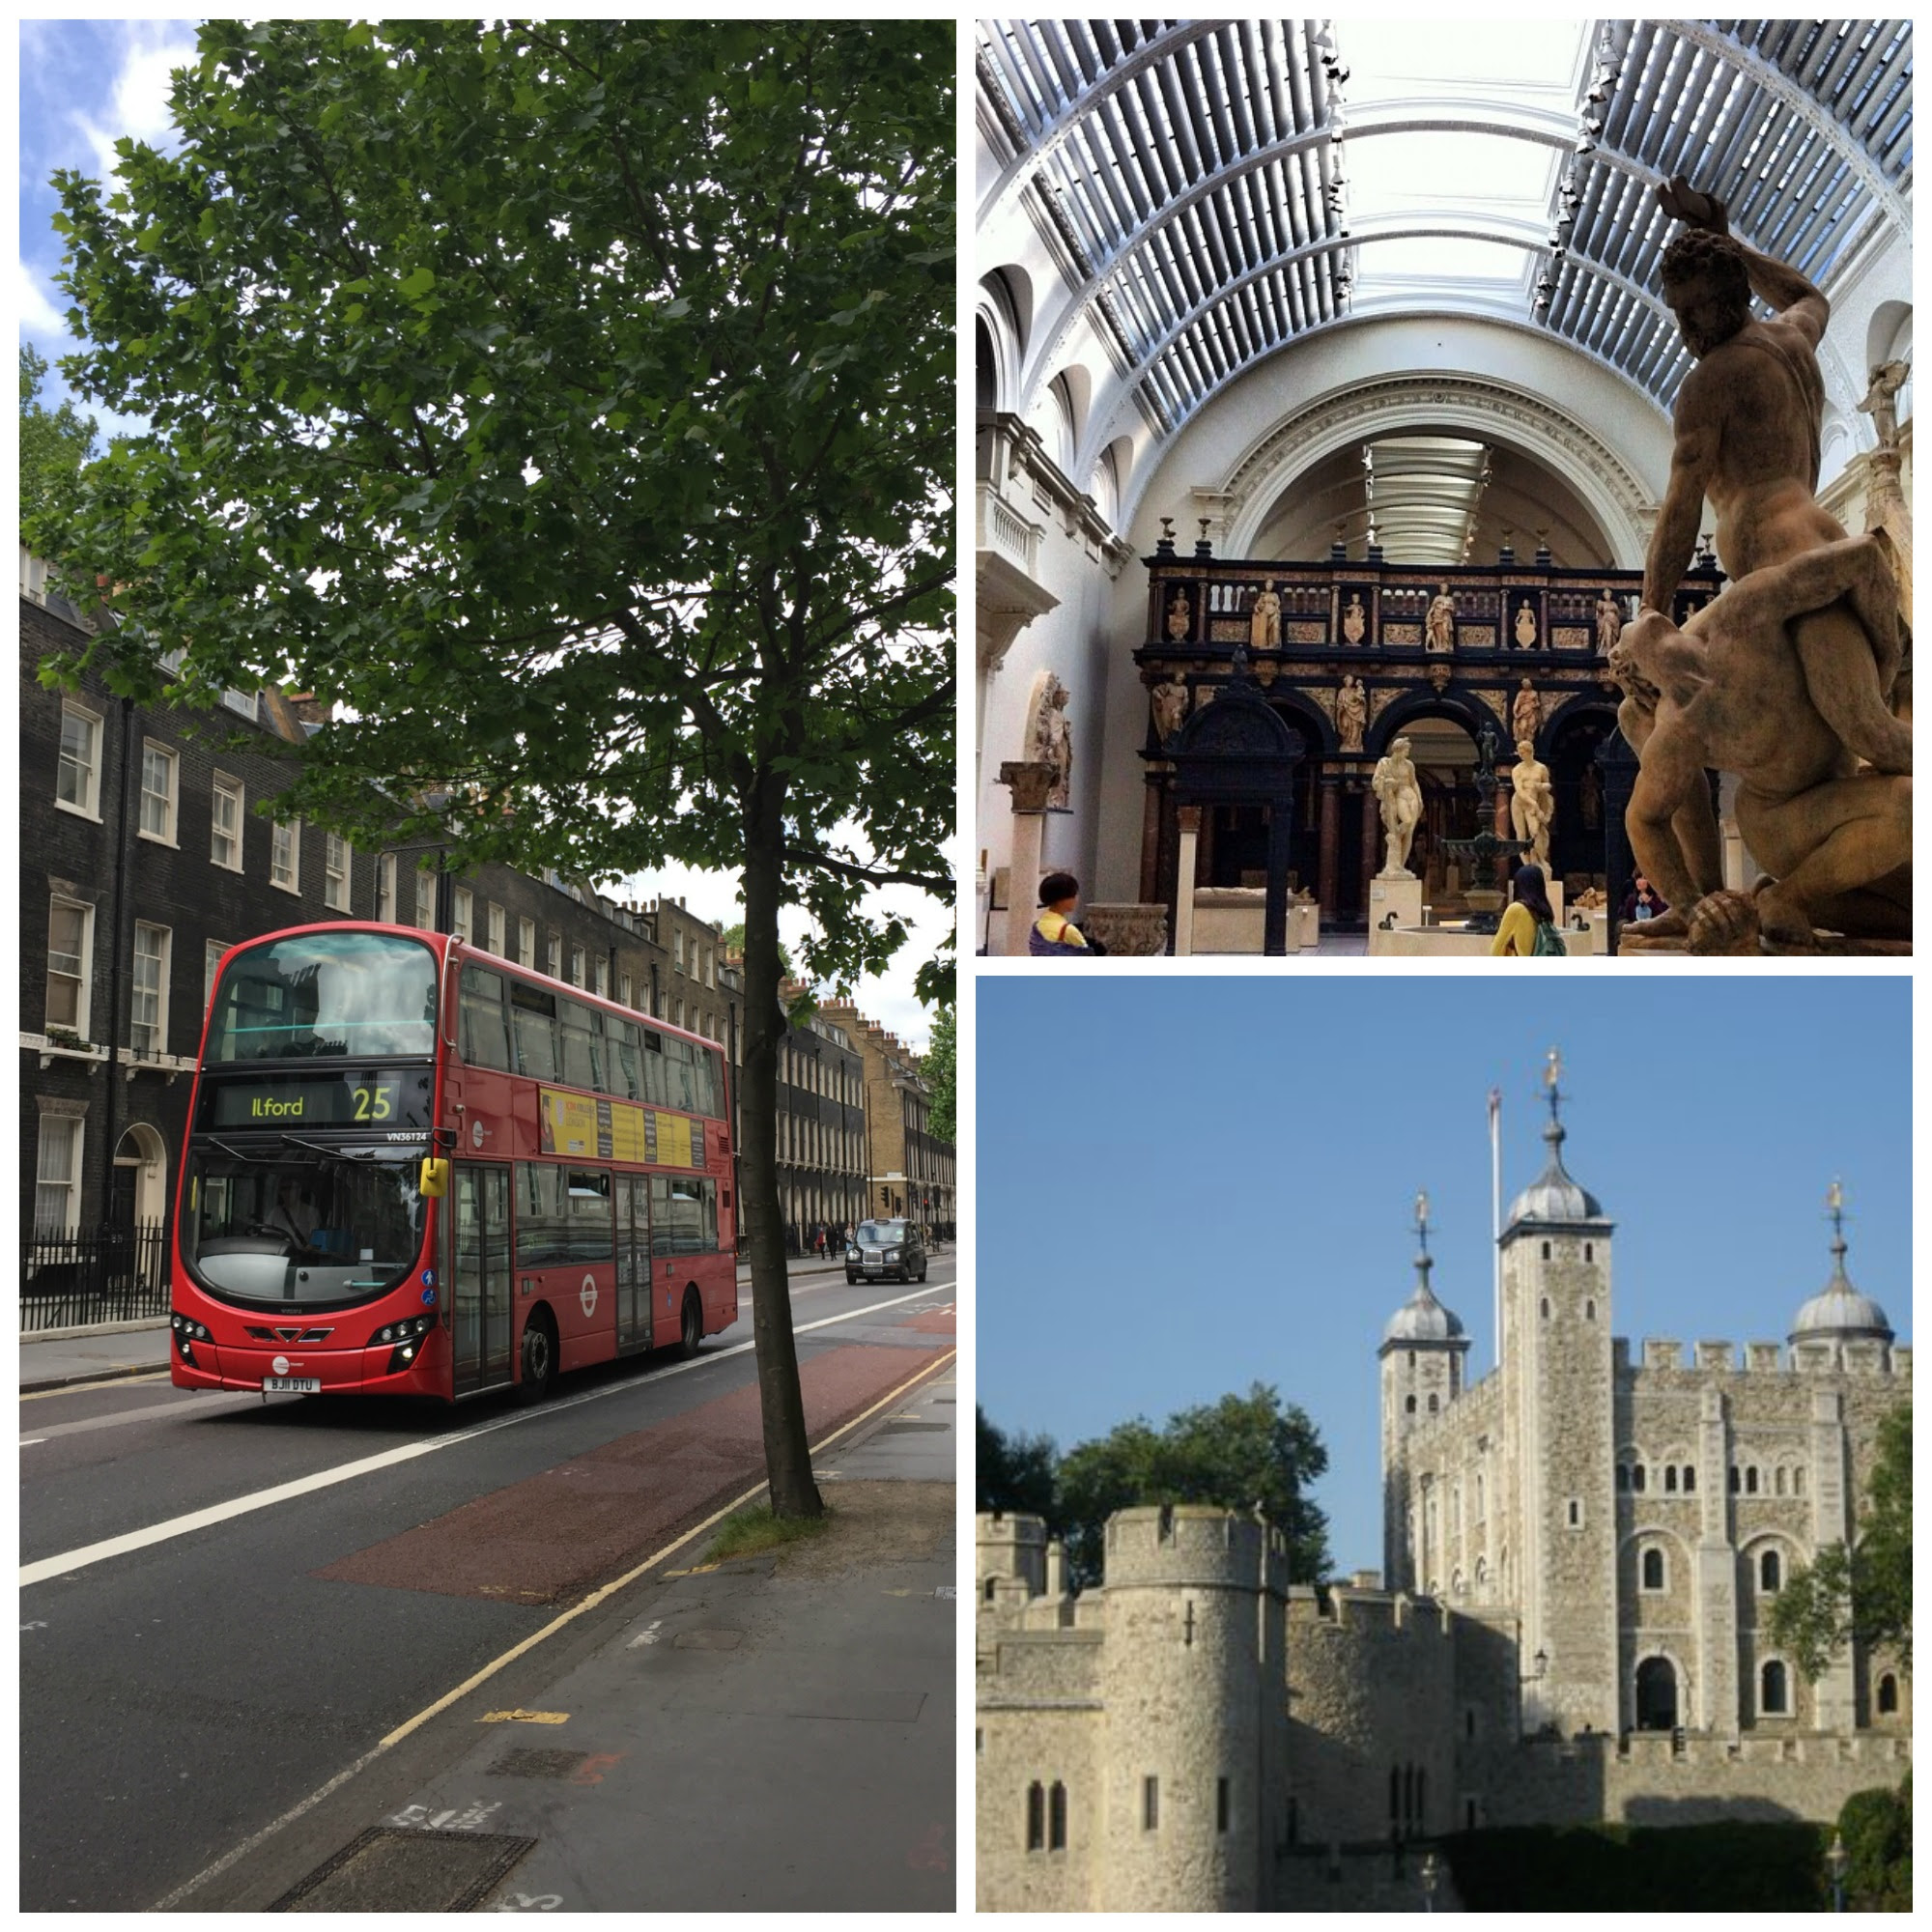 London location images, including a red double-decker bus, the Tate museum, and an English castle.